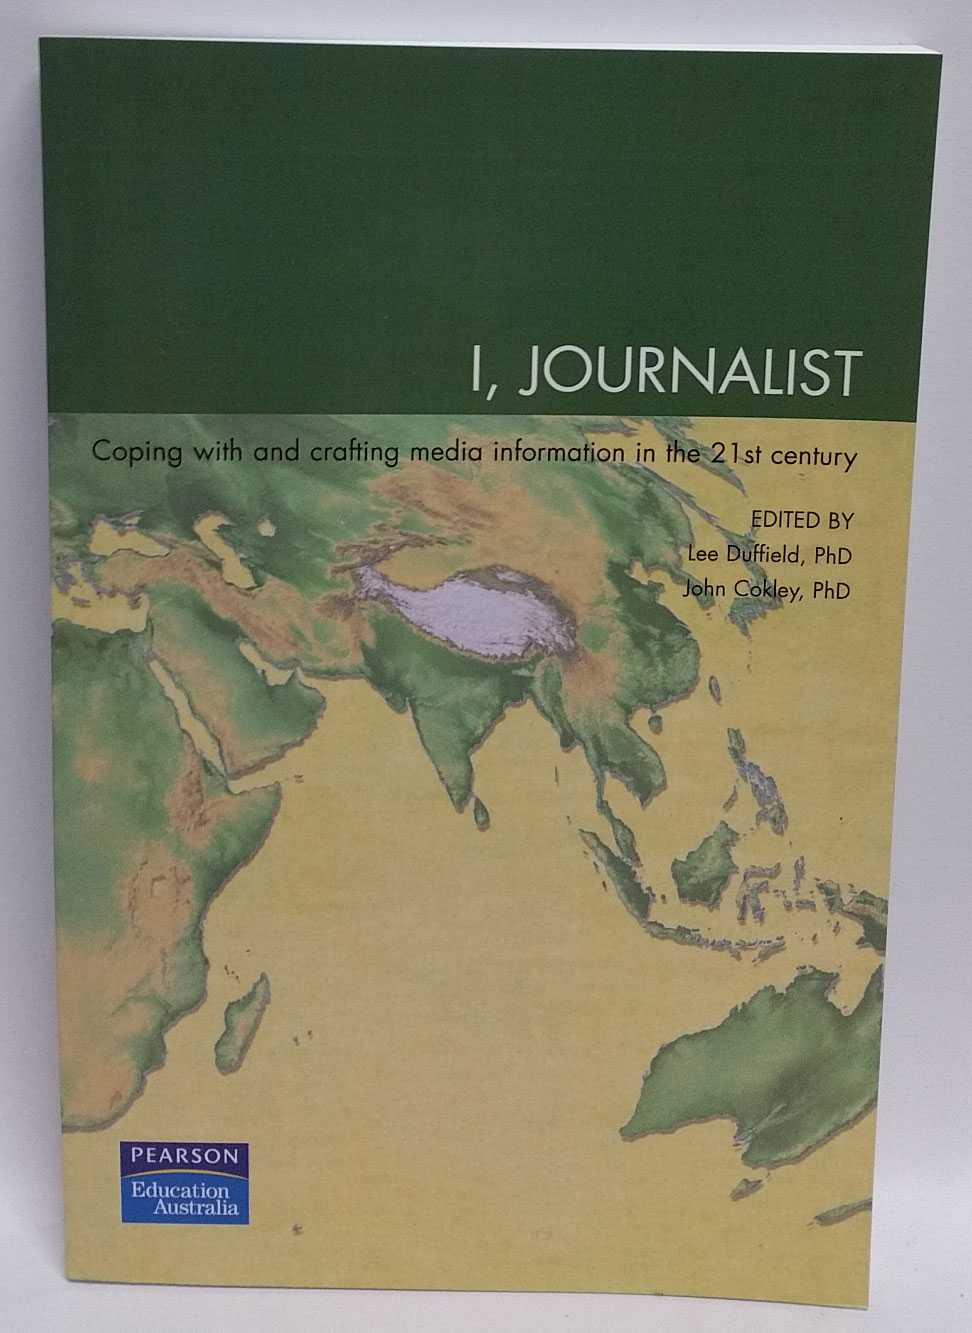 I, Journalist: Coping with and crafting media information in the 21st century, Lee Duffield; John Cokley